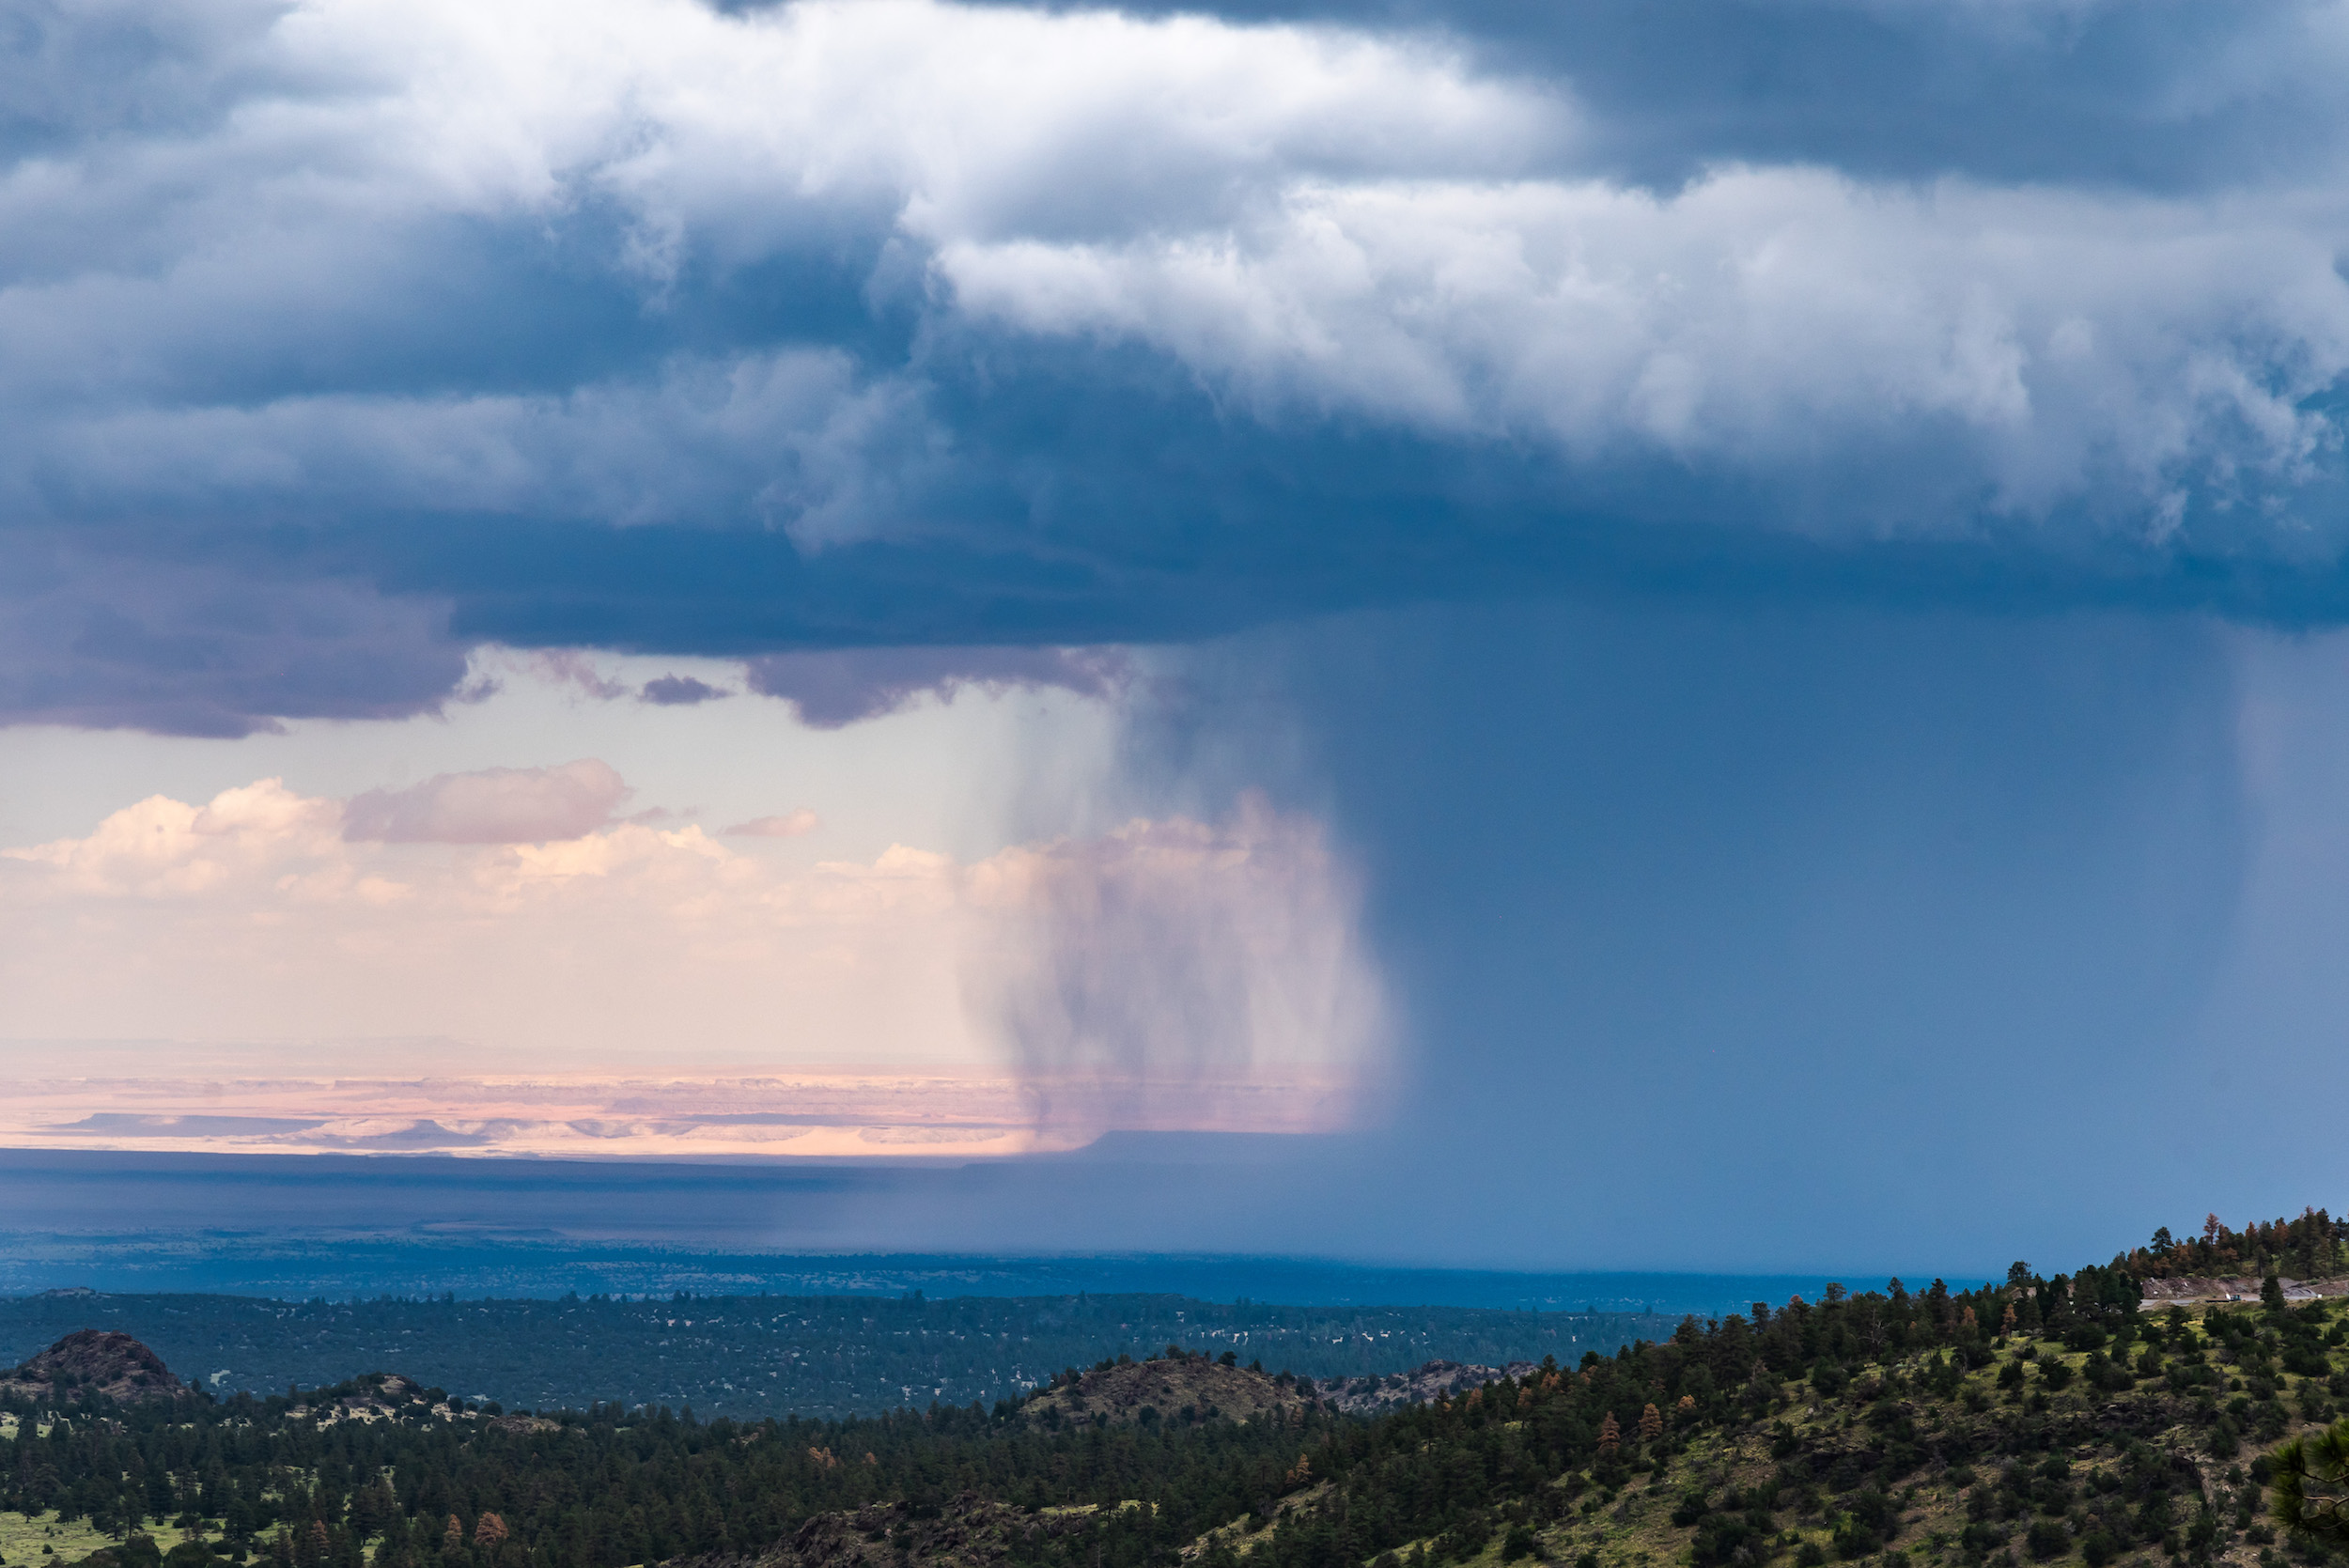 Monsoon rainstorms bring moisture from the tropics to the arid lands of the Desert Southwest, supporting a landscape that is much more biodiverse than most other deserts in the world.